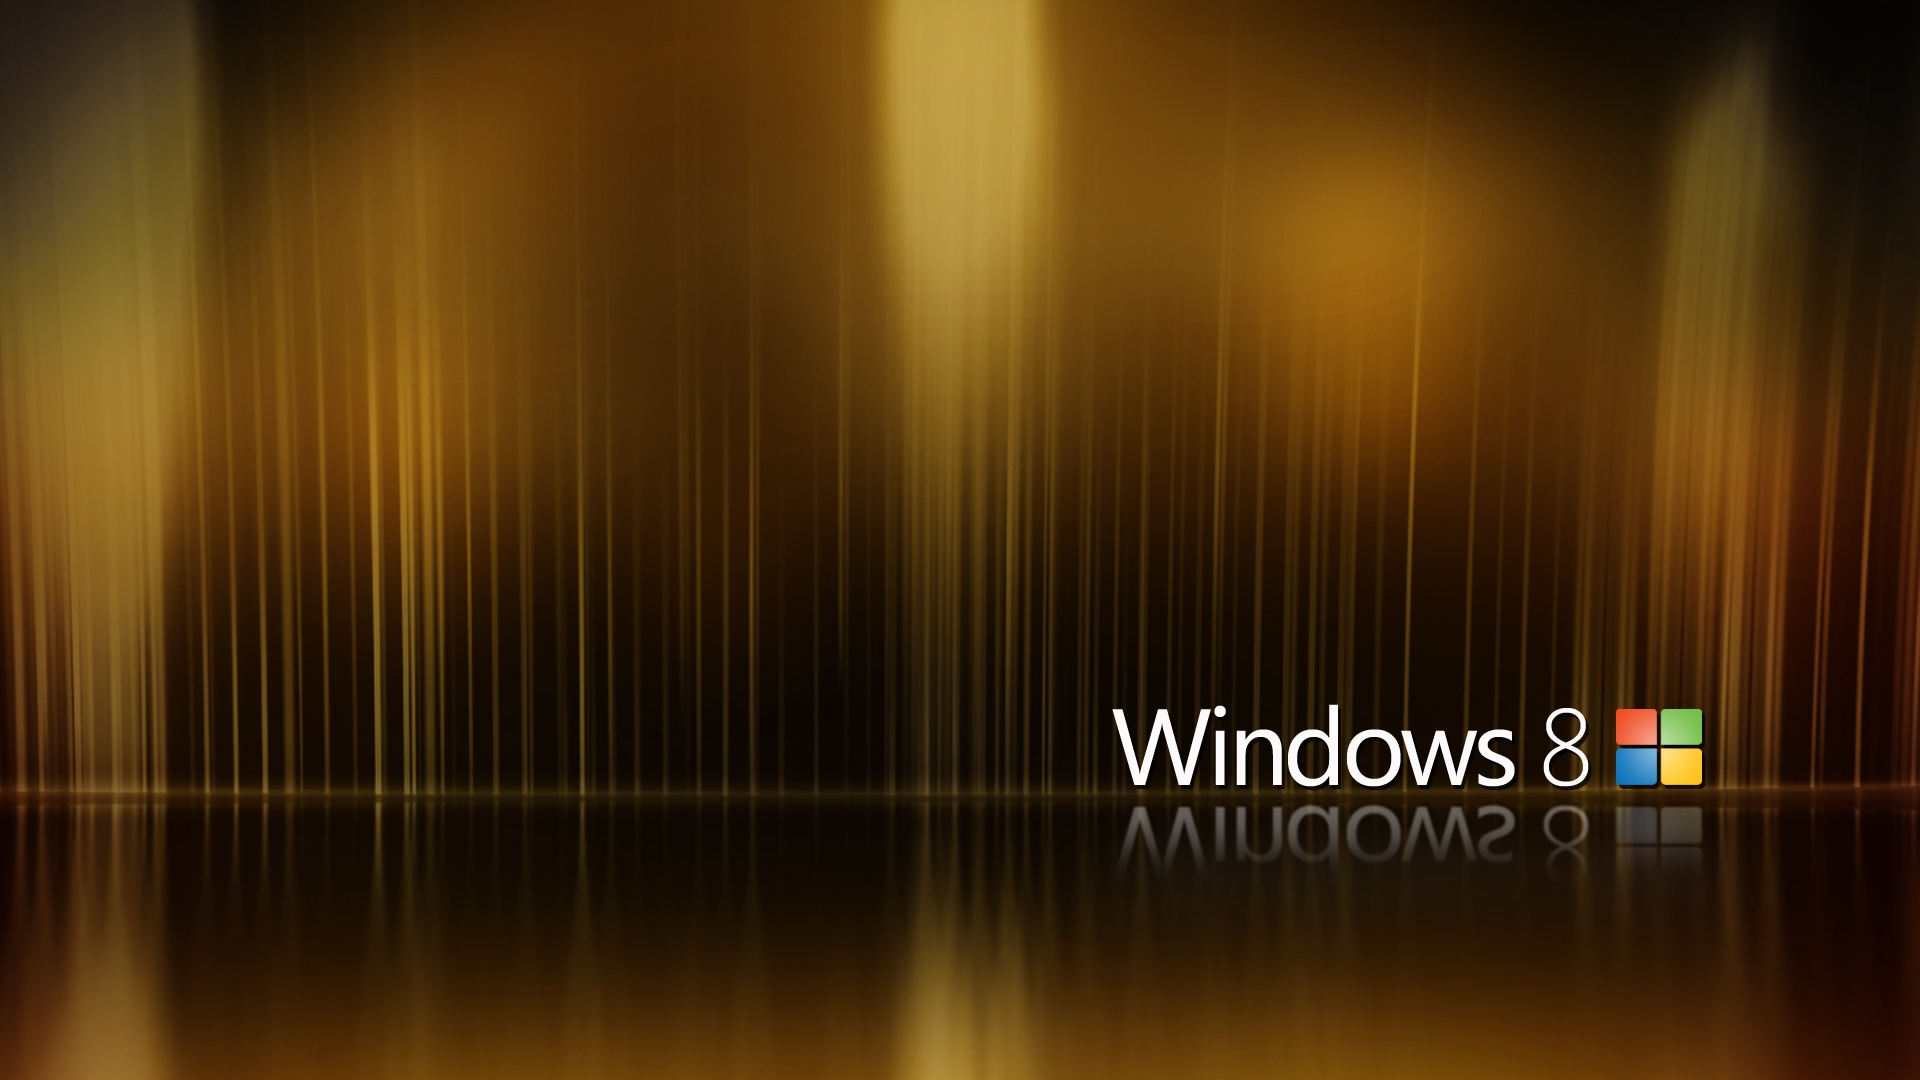 1920x1080 windows 8 desktop pc and mac wallpaper for Windows 8 bureaublad